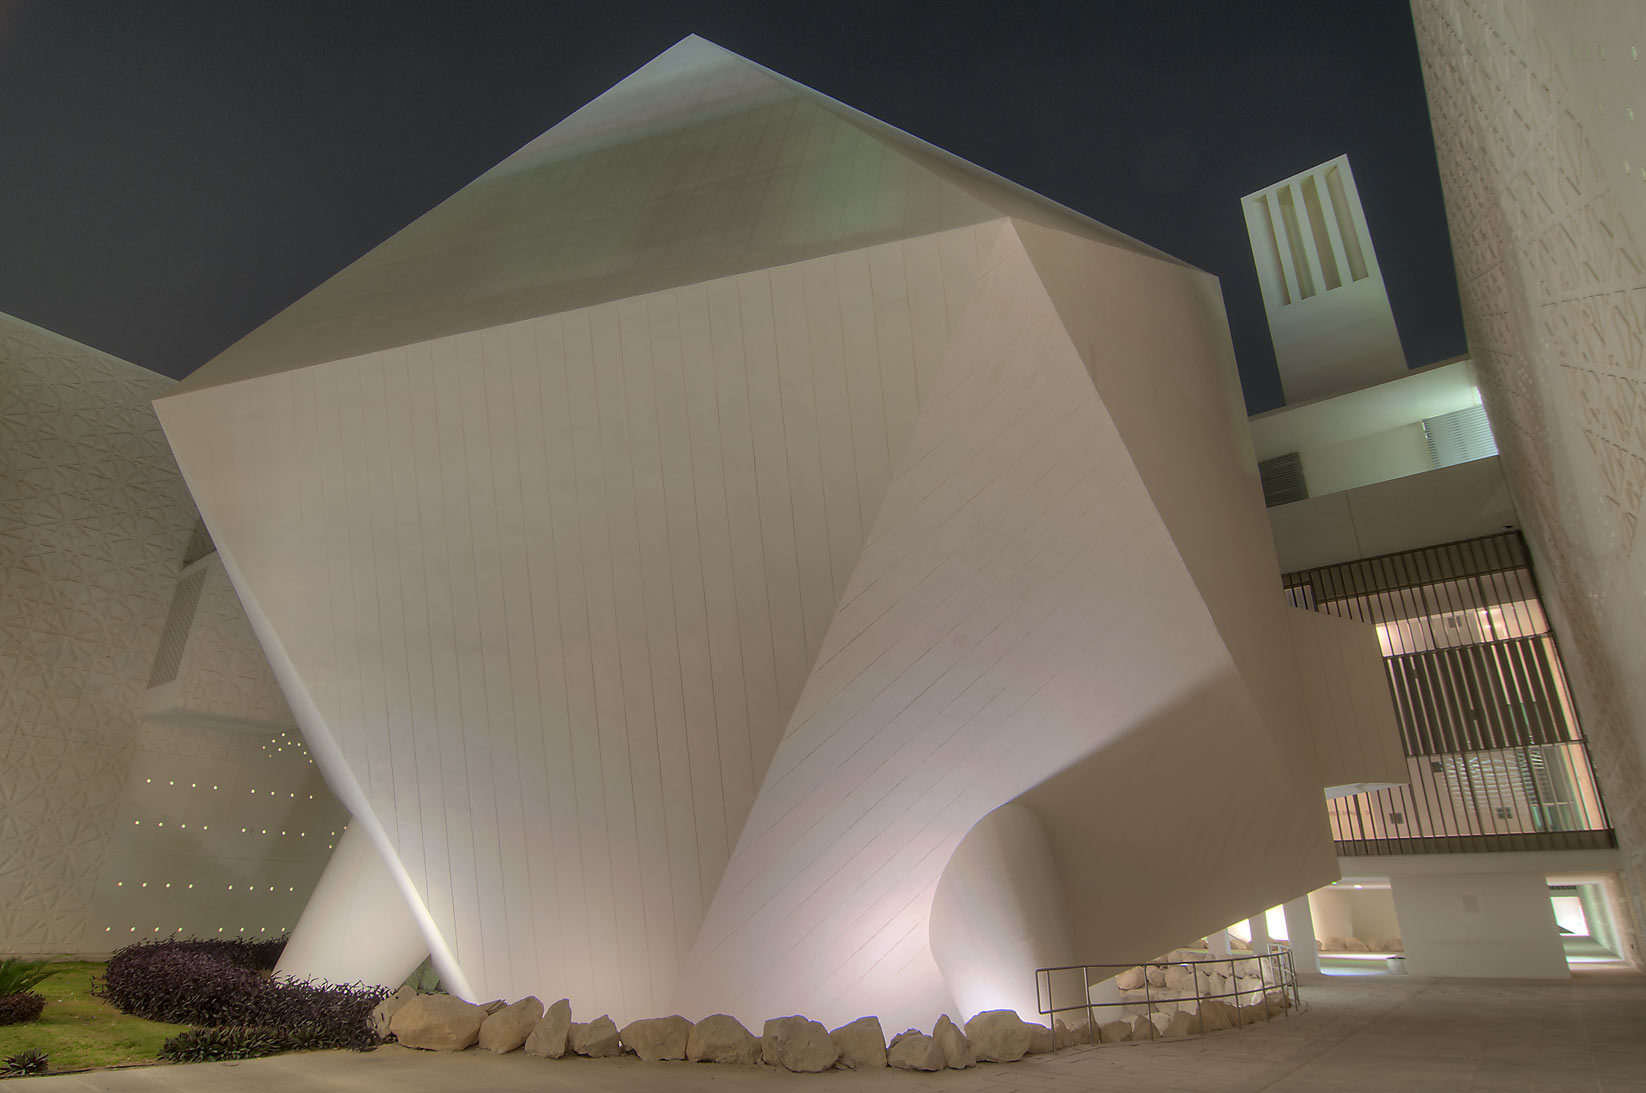 Icosahedron lecture hall of Weill Cornell Medical College in Education City. Doha, Qatar